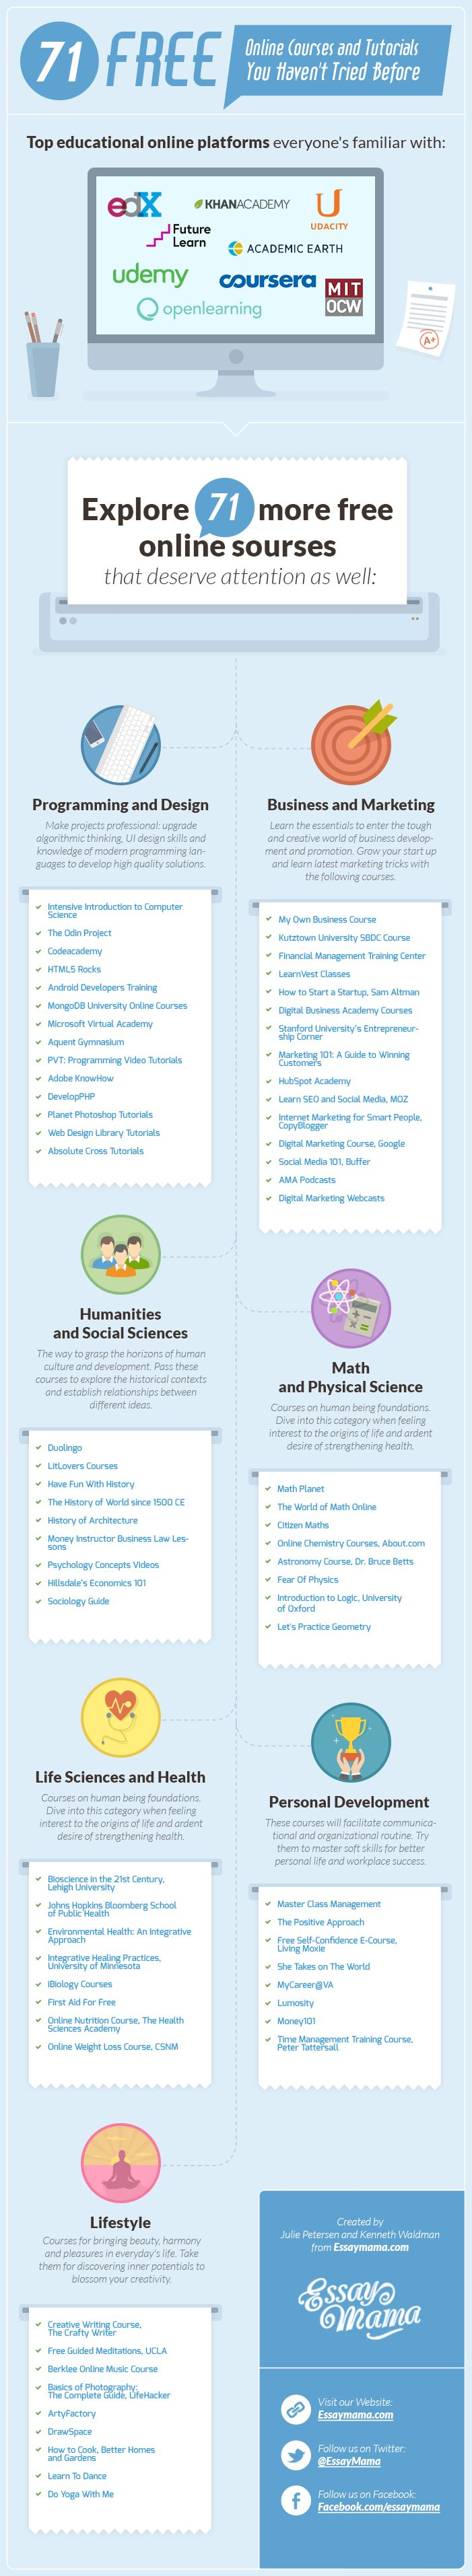 best infographic education ideas inspirational  71 online courses and tutorials you haven t tried before infographic